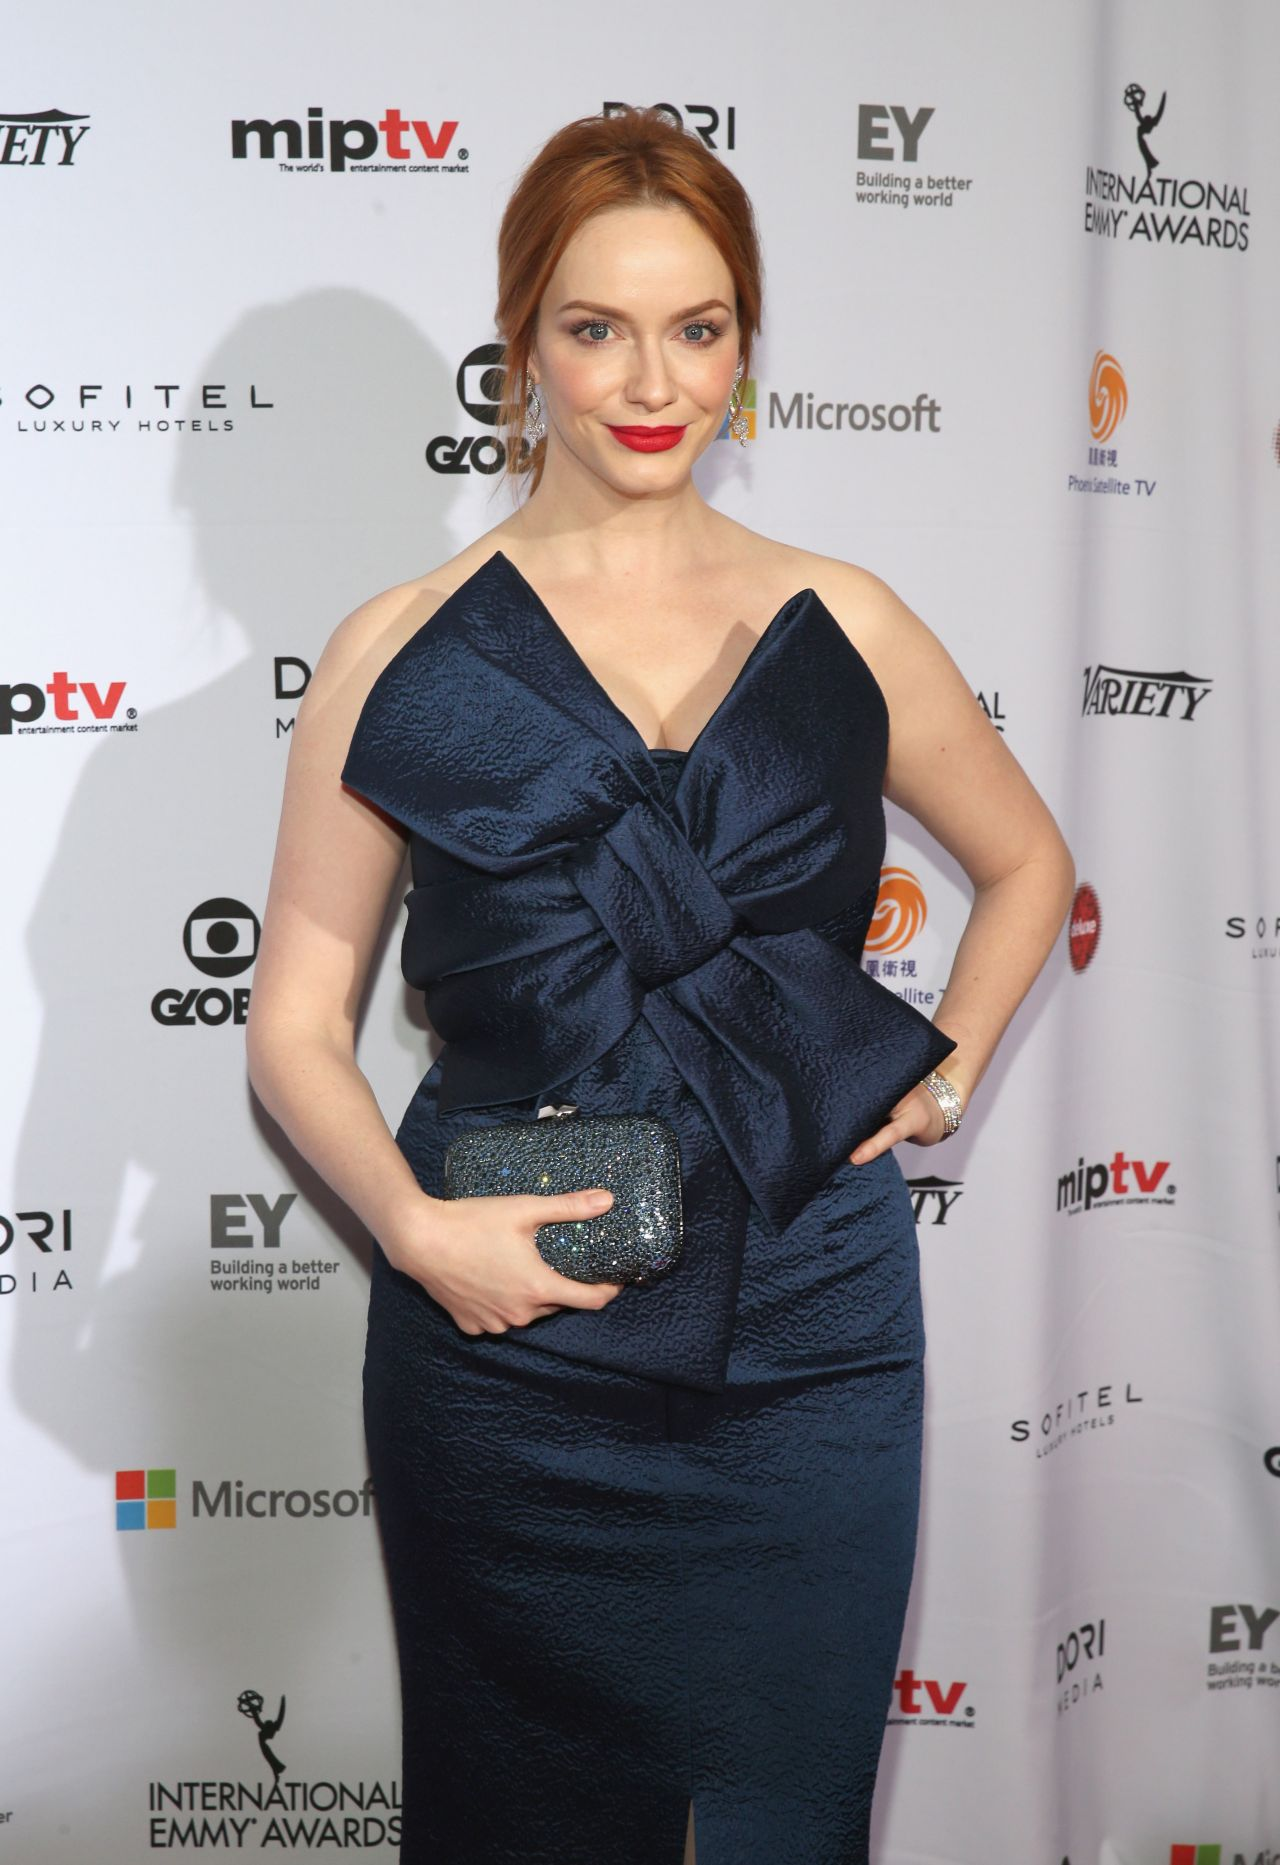 Christina Hendricks - 2014 International Academy Of Television Arts & Sciences Emmy Awards in New York City